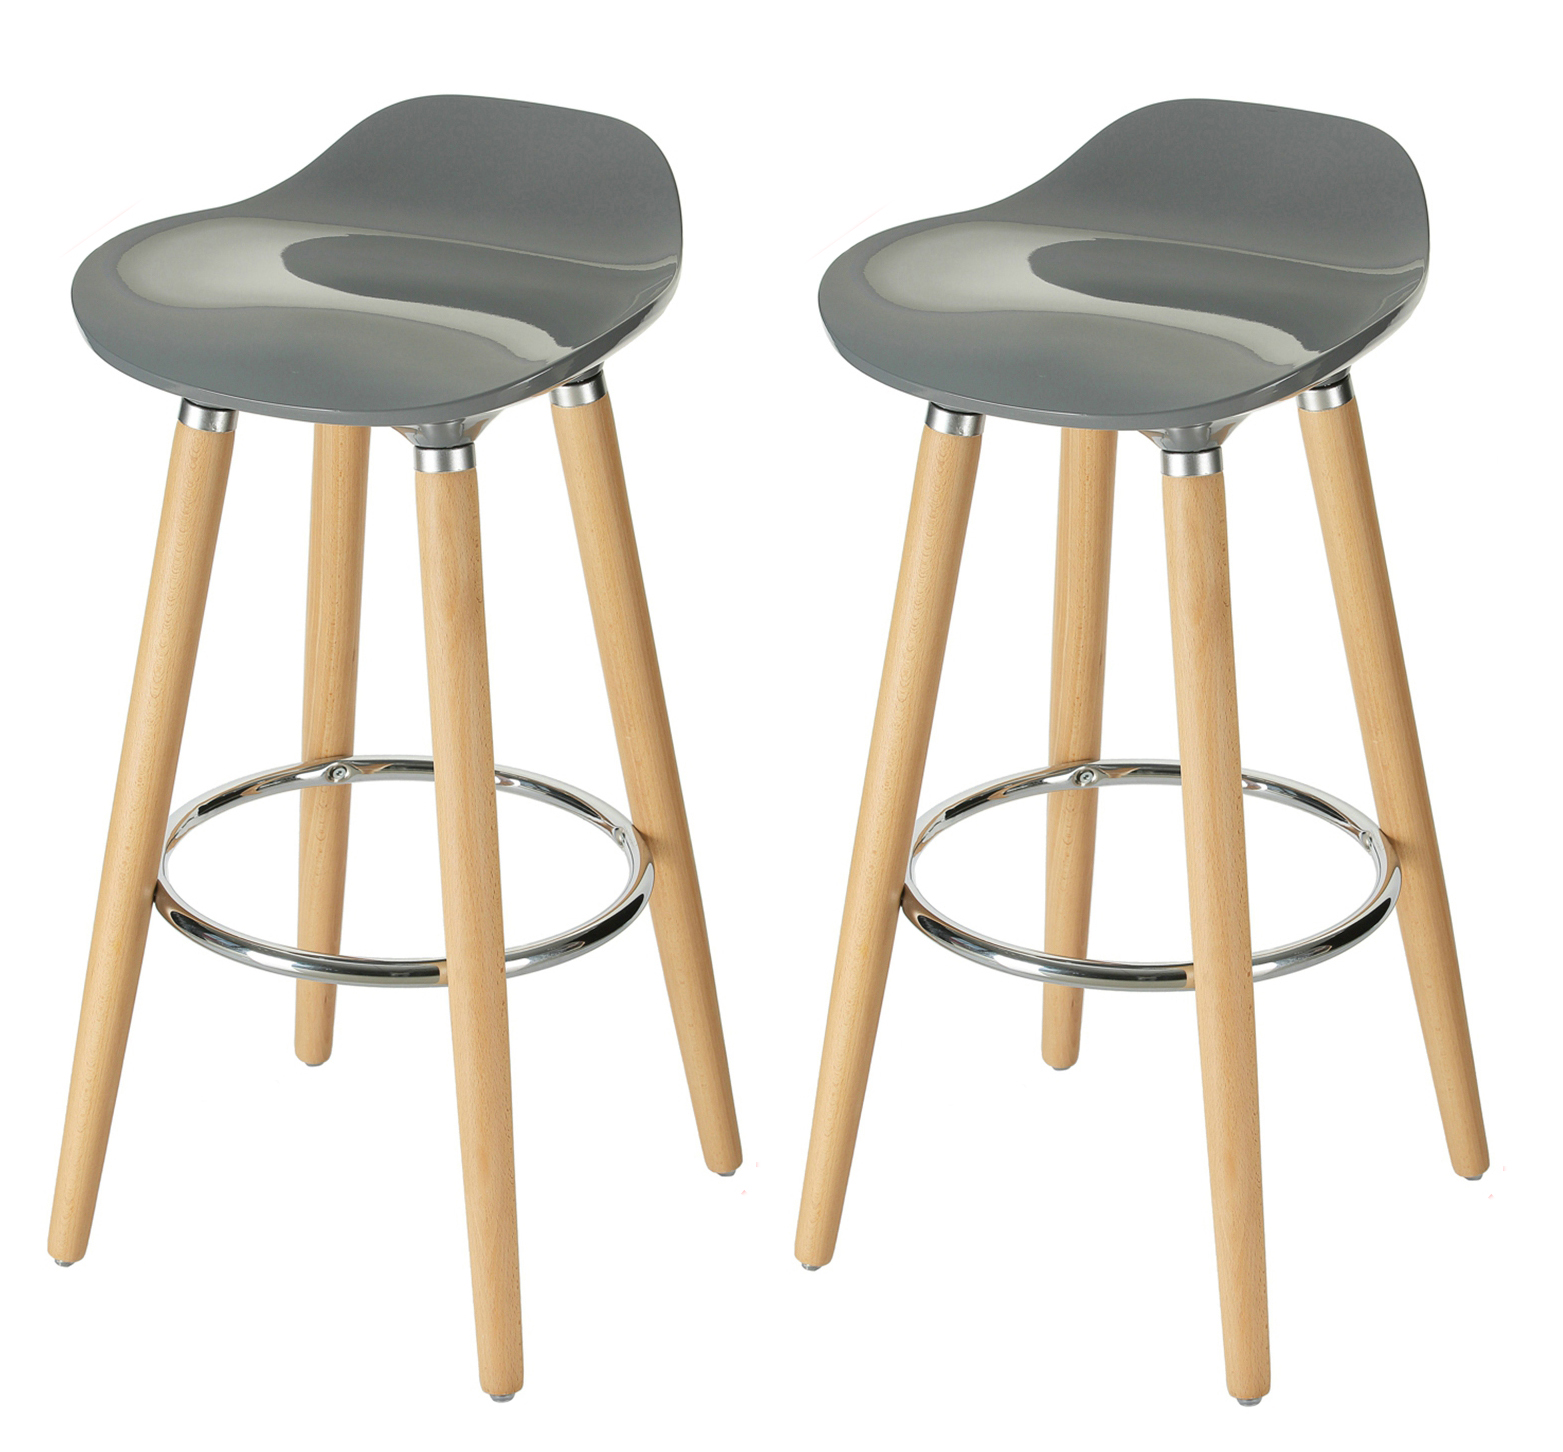 Orolay Grey Kitchen Breakfast Barstool For 2 The Living